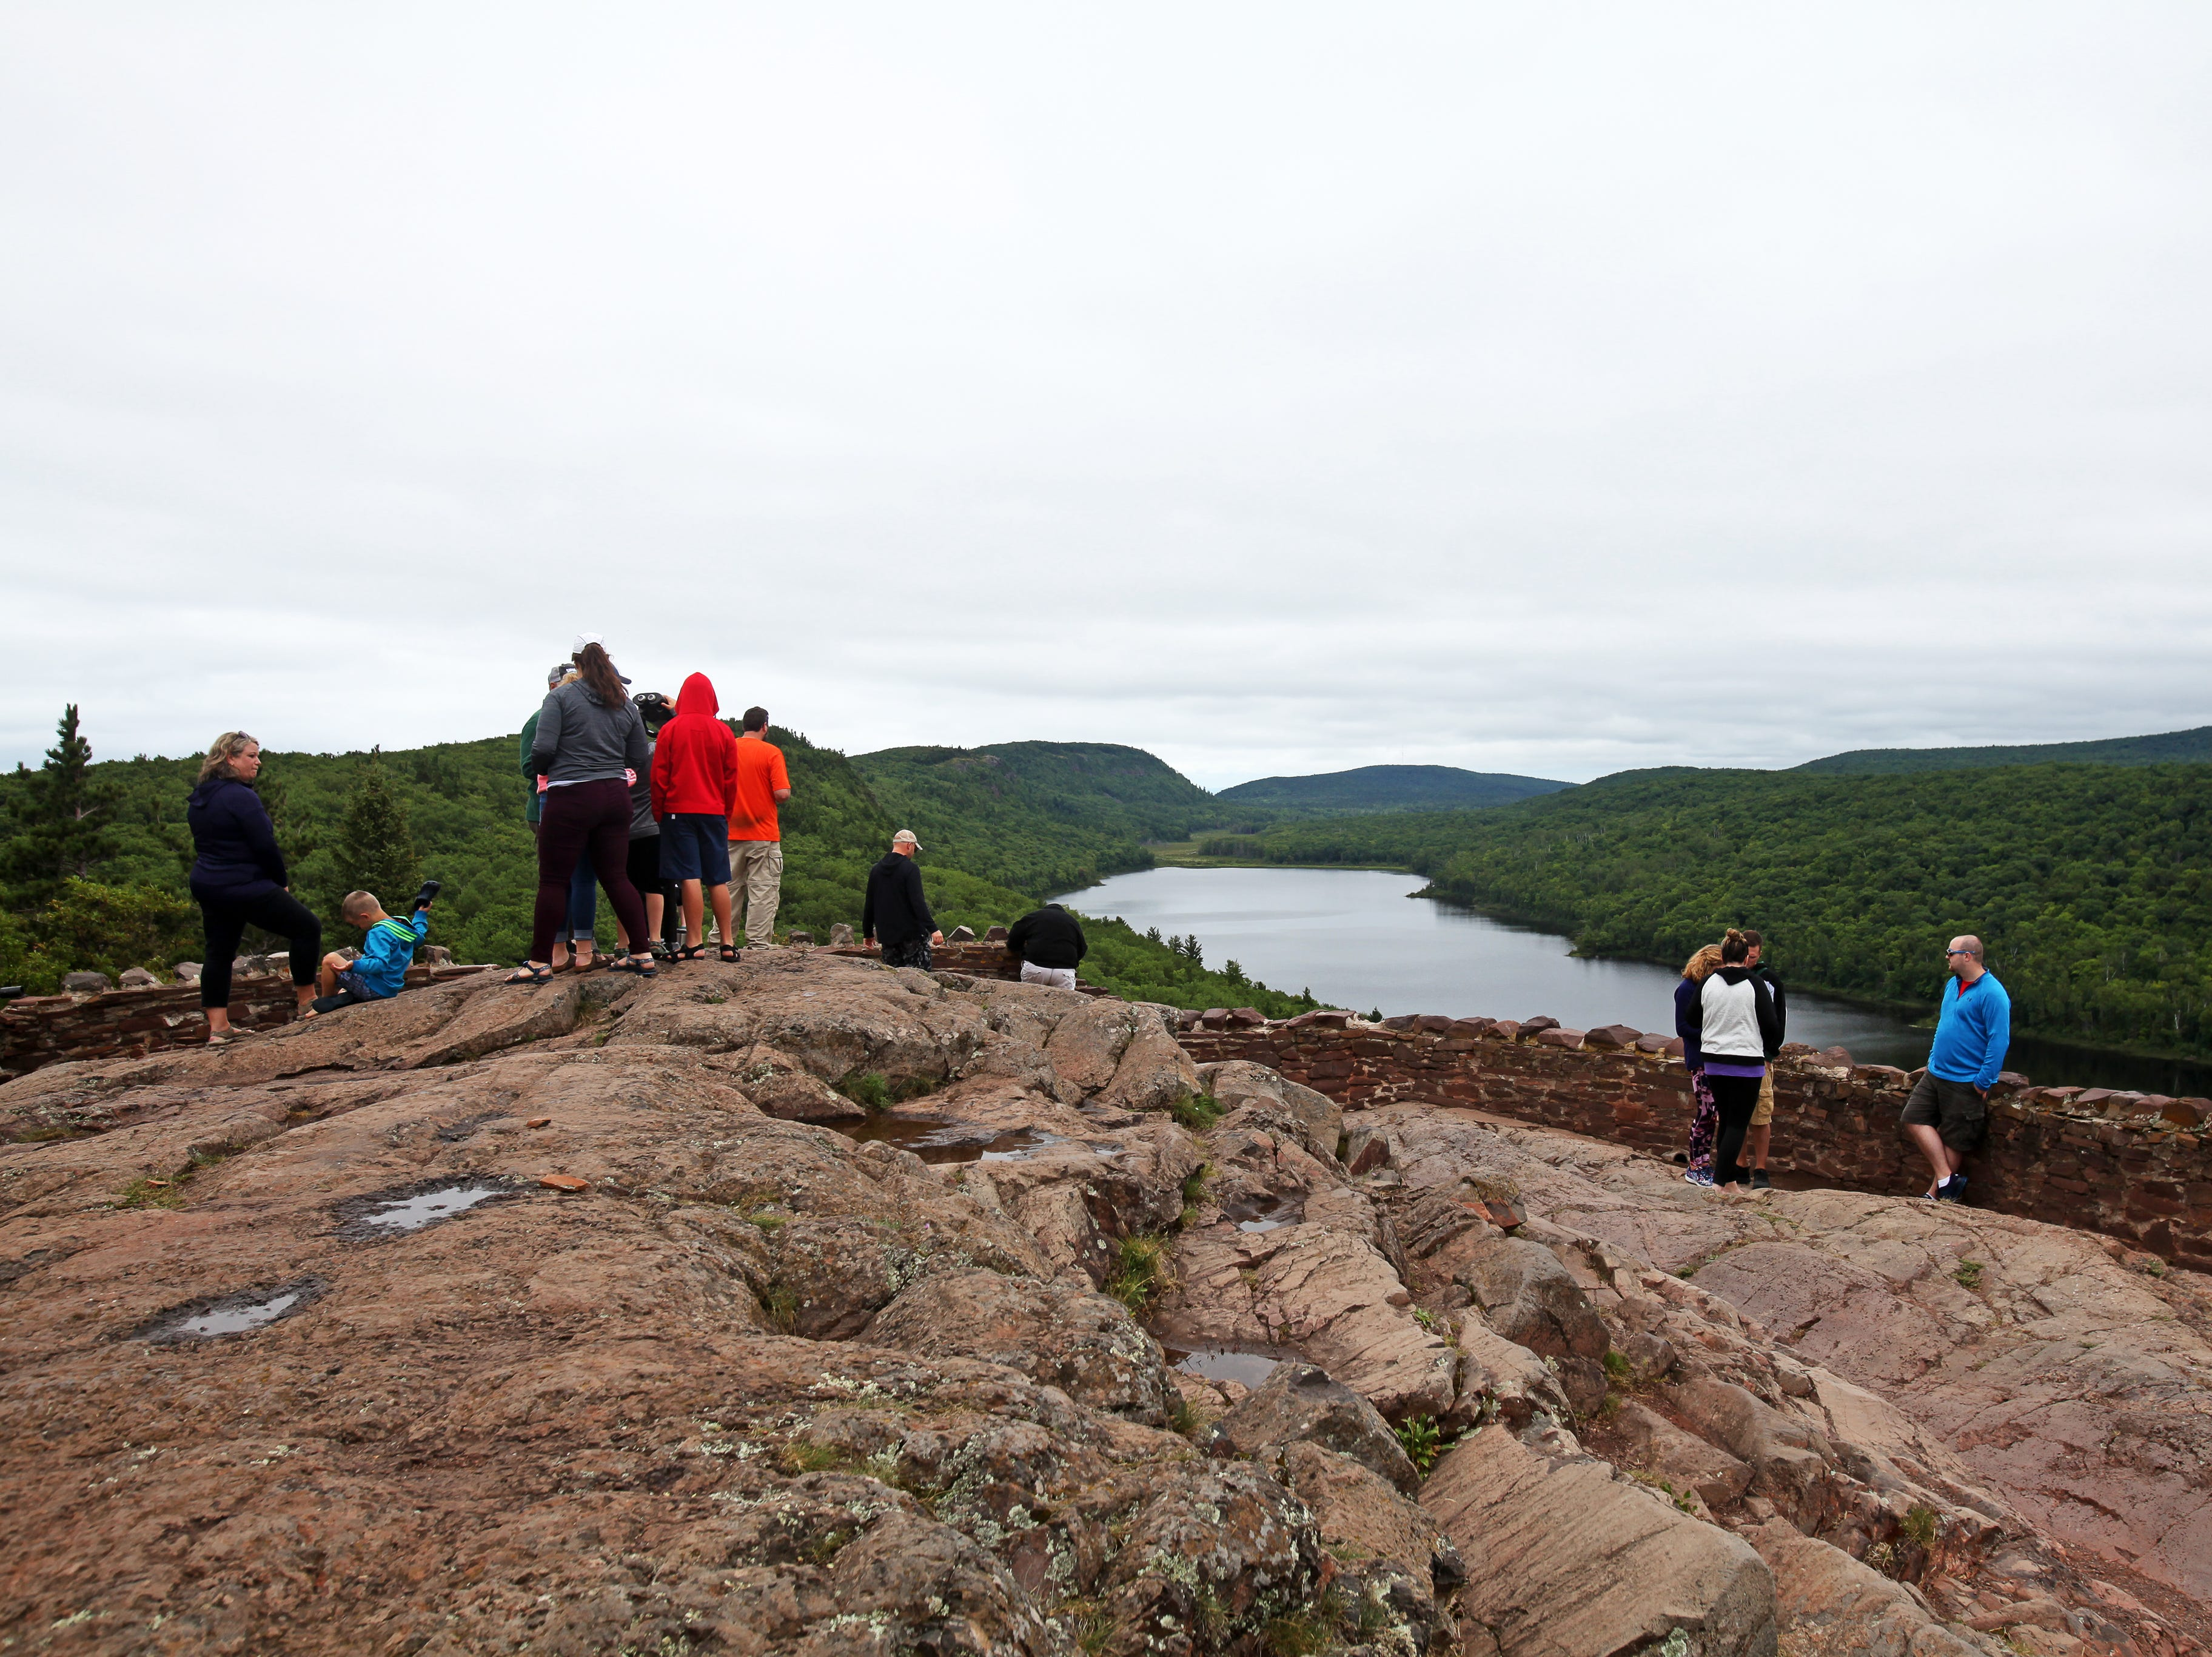 The Lake of the Clouds overlook is one of the most popular spots in the Porcupine Mountains Wilderness State Park in Michigan's Upper Peninsula.